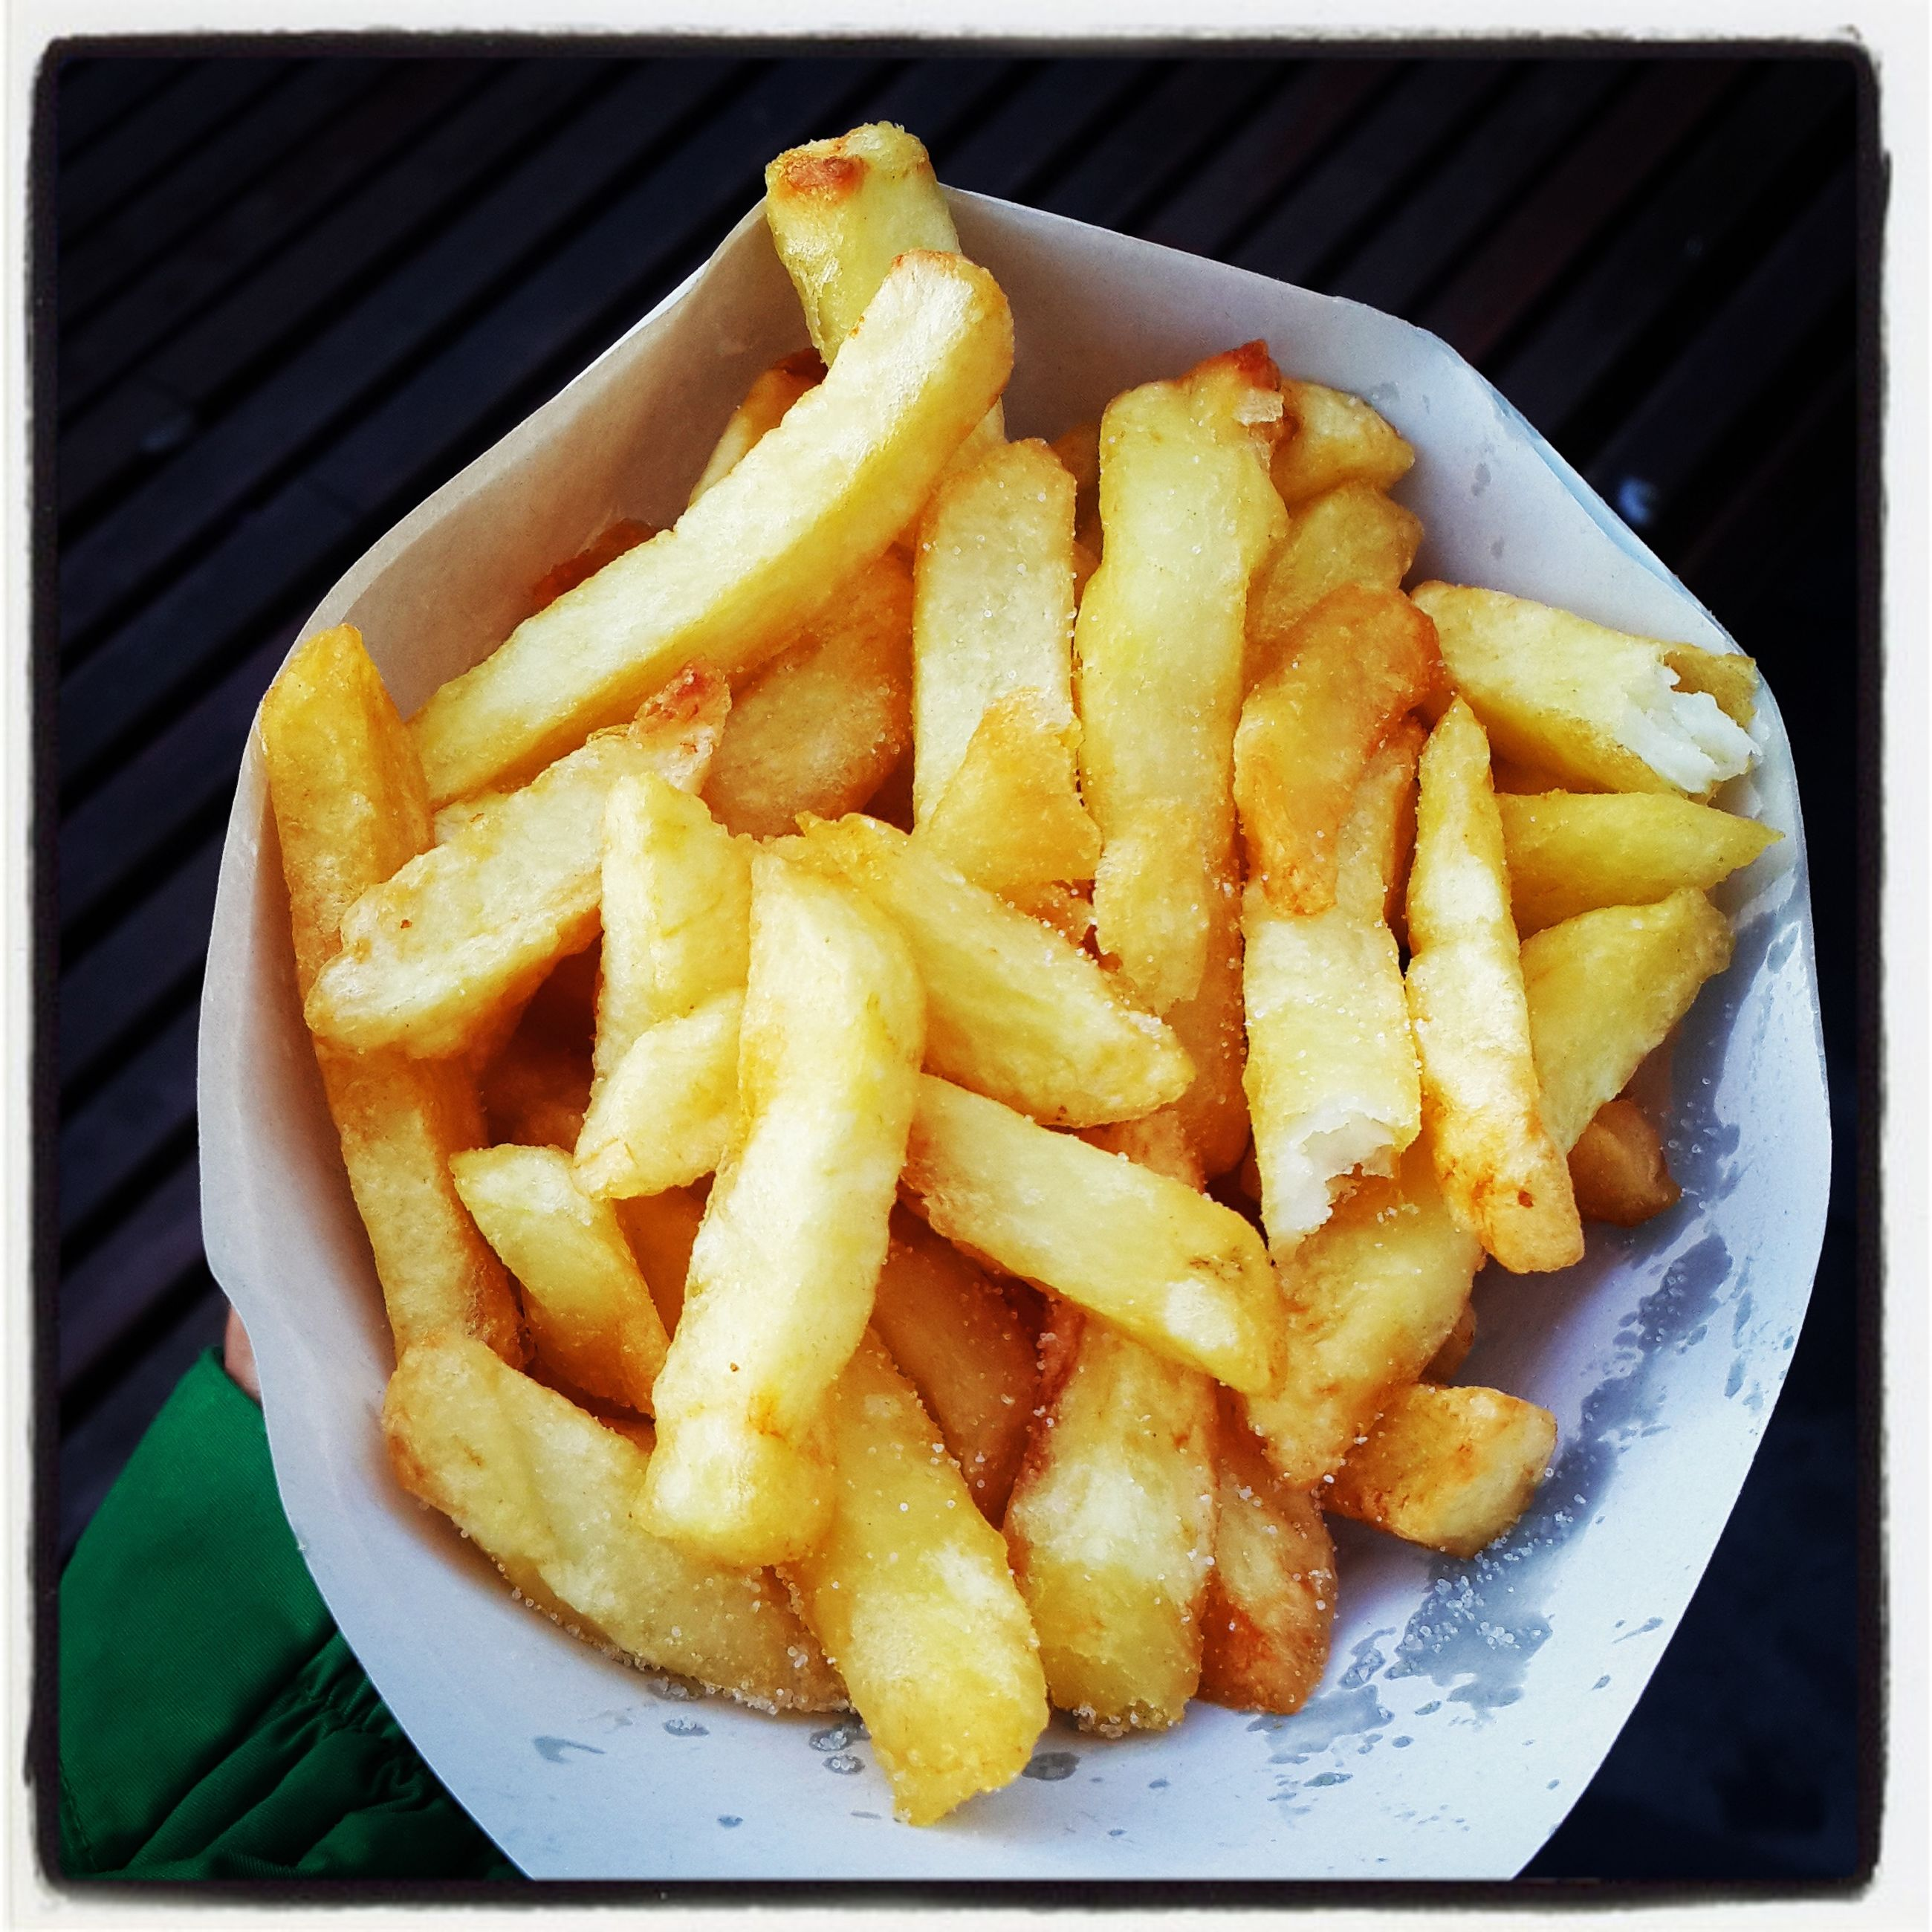 food, food and drink, freshness, ready-to-eat, french fries, indoors, fast food, unhealthy eating, transfer print, close-up, prepared potato, deep fried, still life, fried, auto post production filter, snack, high angle view, plate, sausage, meat